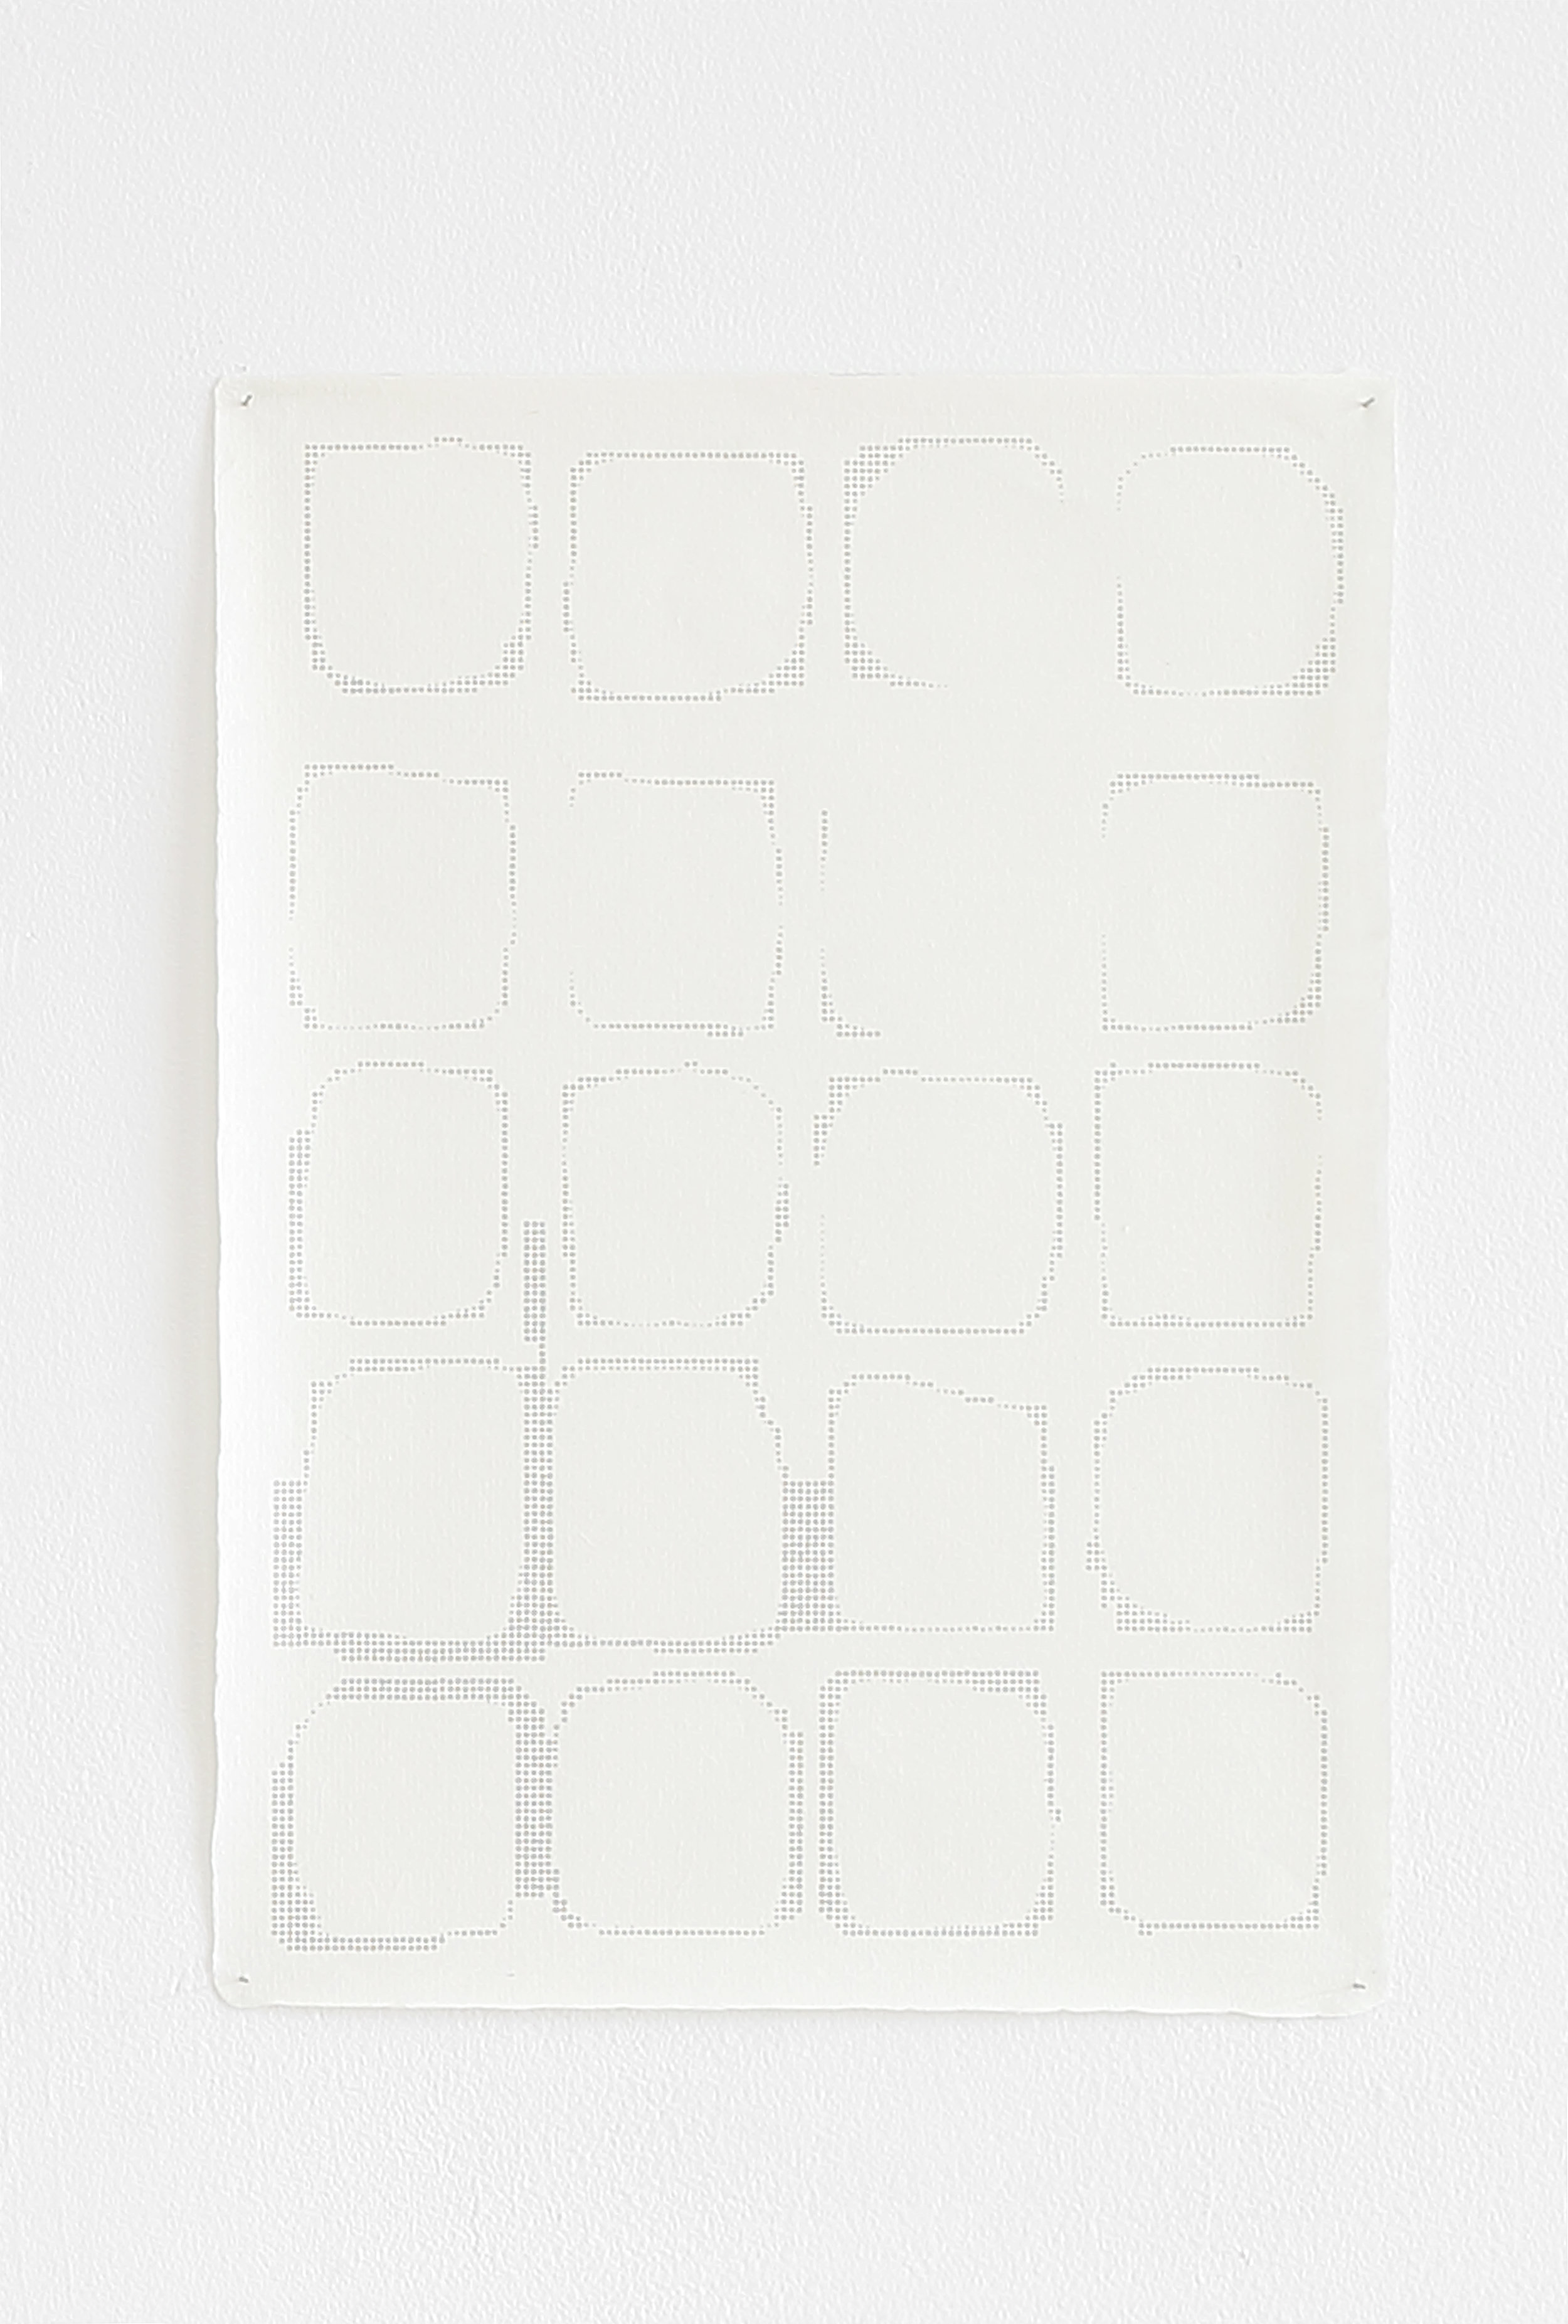 Azadeh Gholizadeh ,  Repetition Figure (1720) , 2017, graphite, print on rice paper